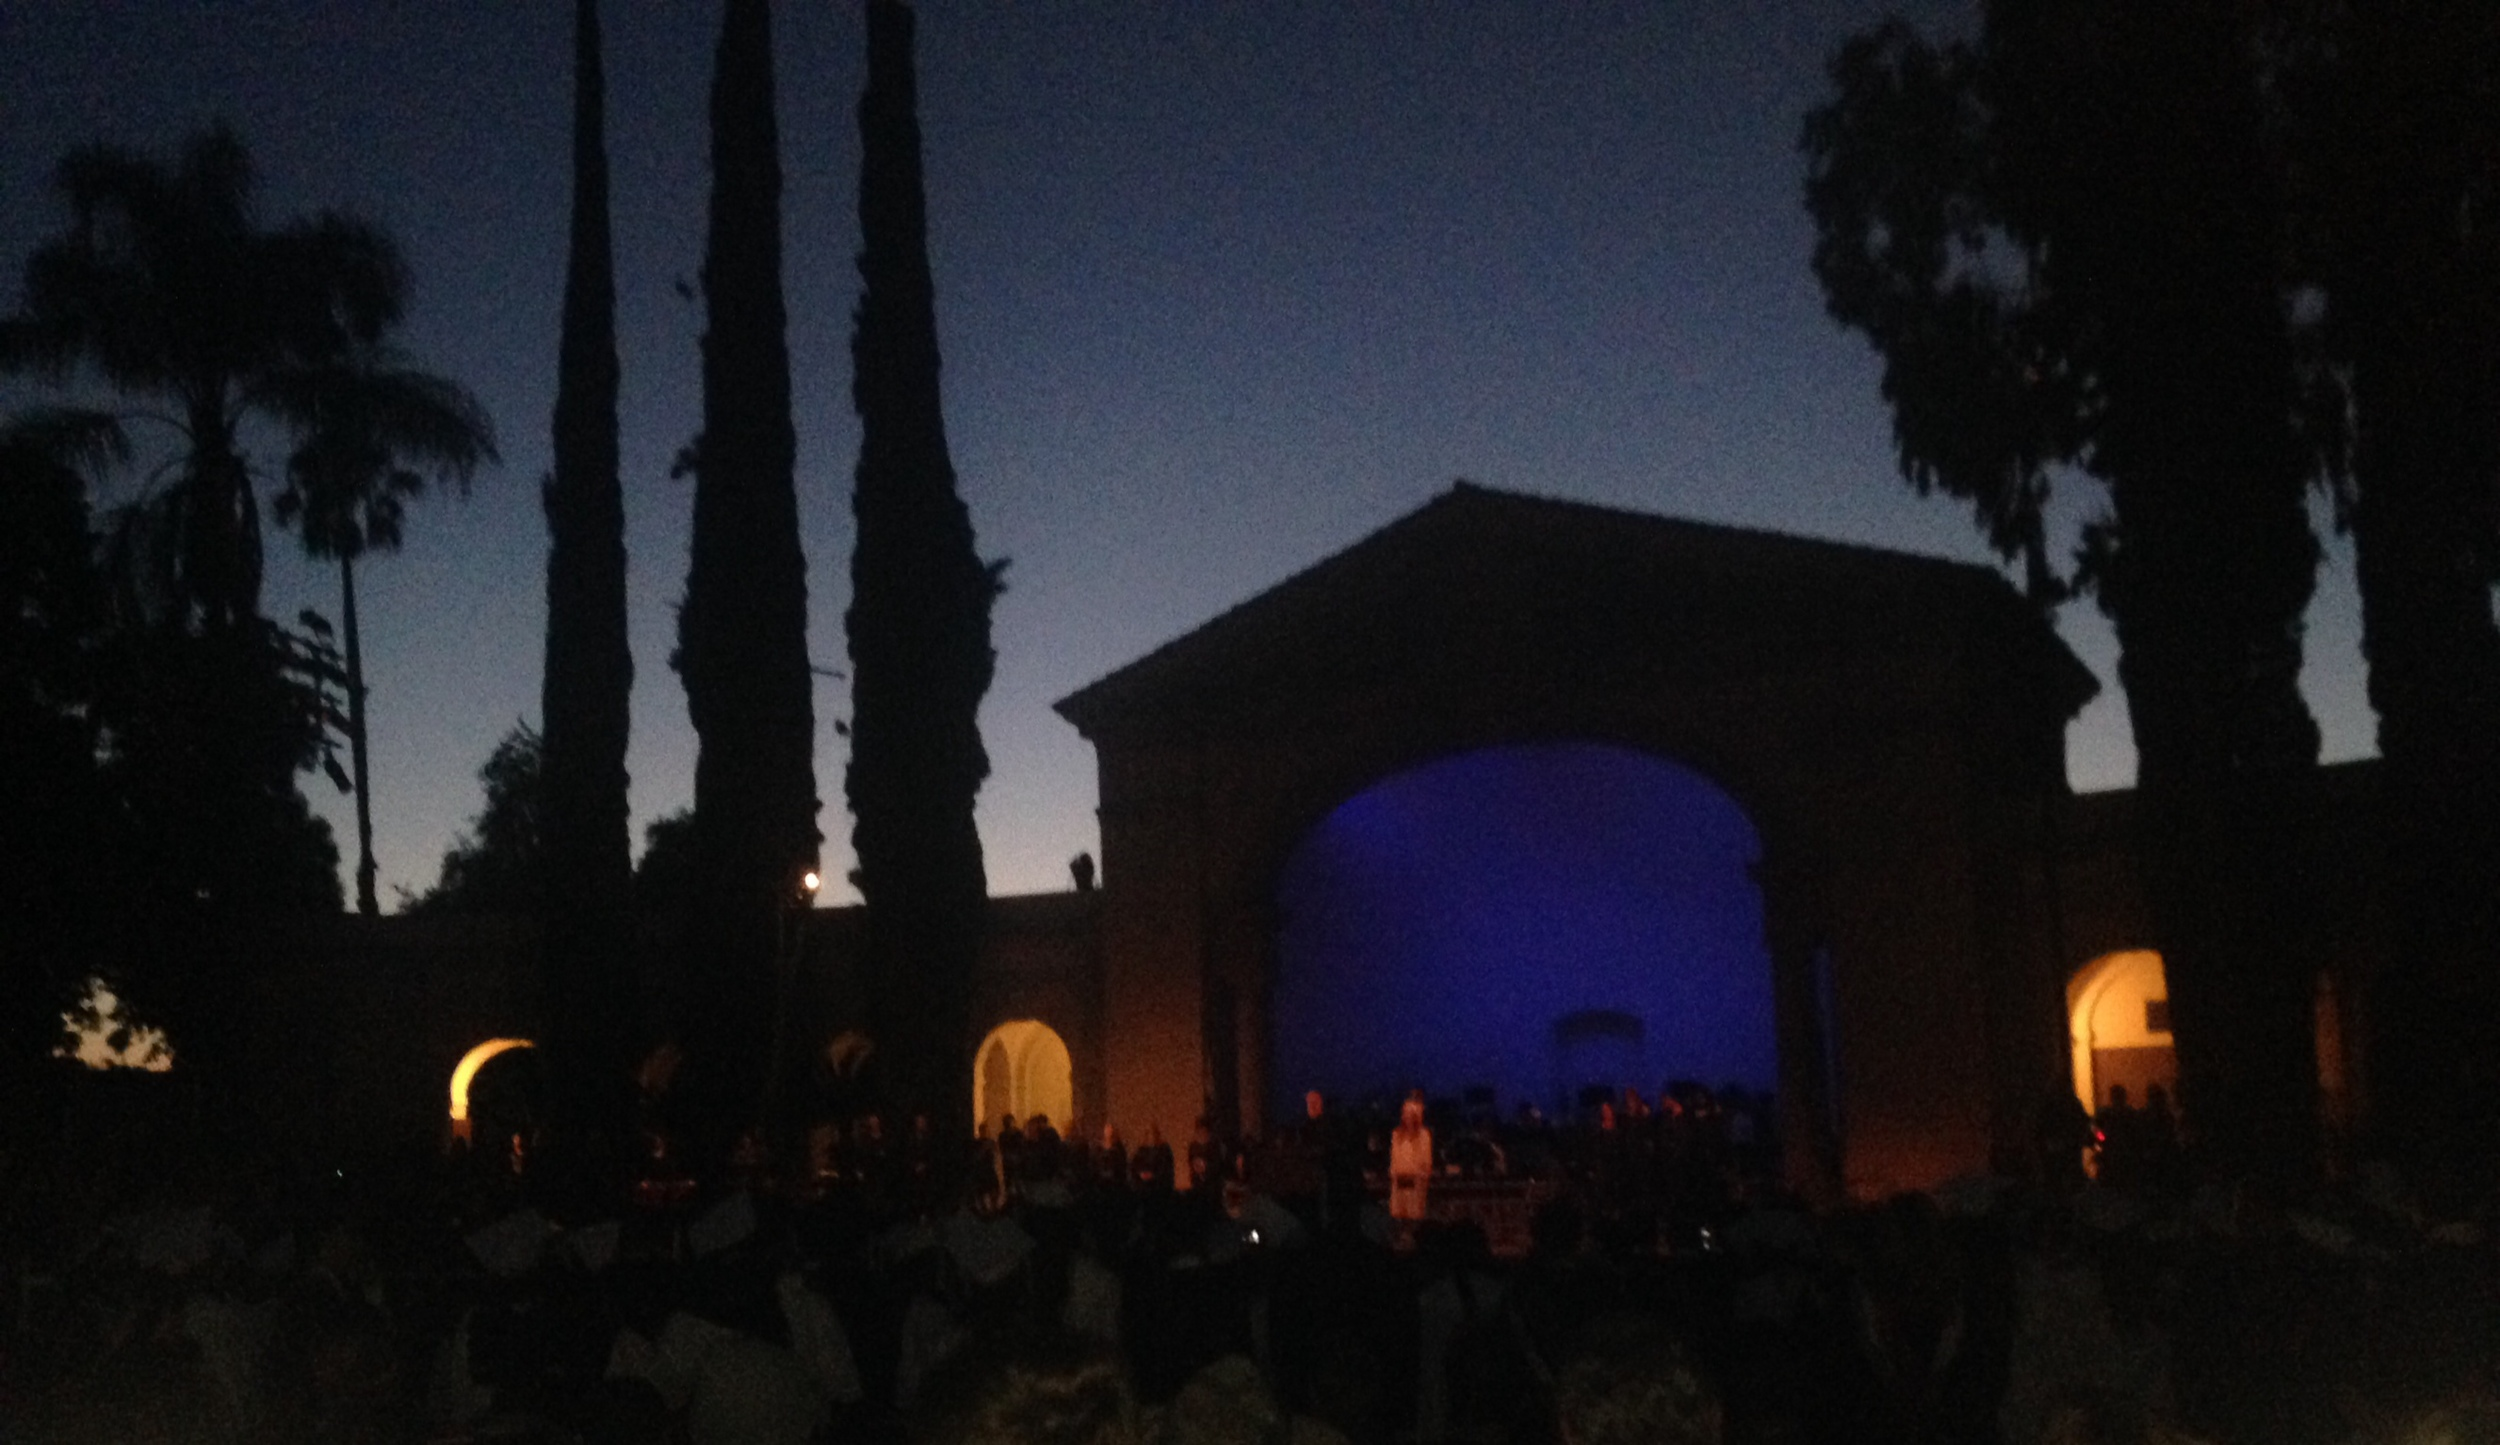 At the end of the ceremony, they dim the lights and the church bells a few blocks away ring out the alma mater.